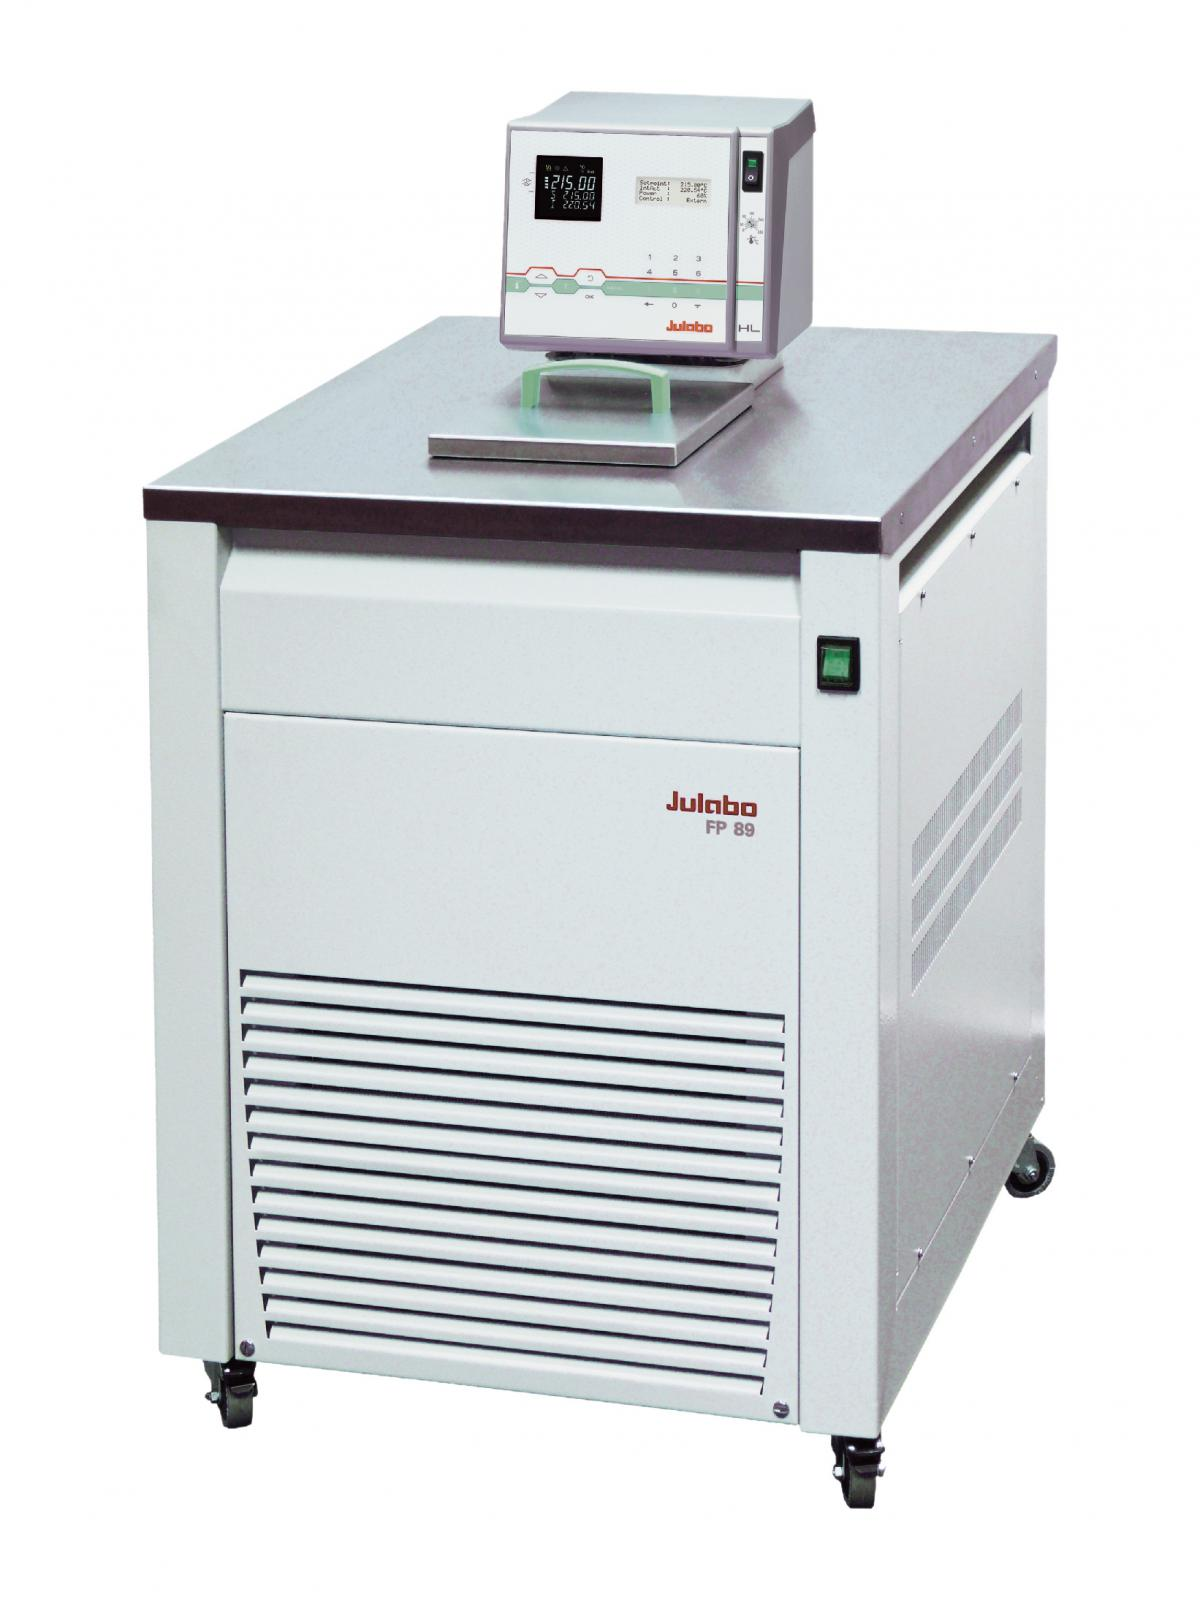 Julabo FP89-HL Circulating Chiller